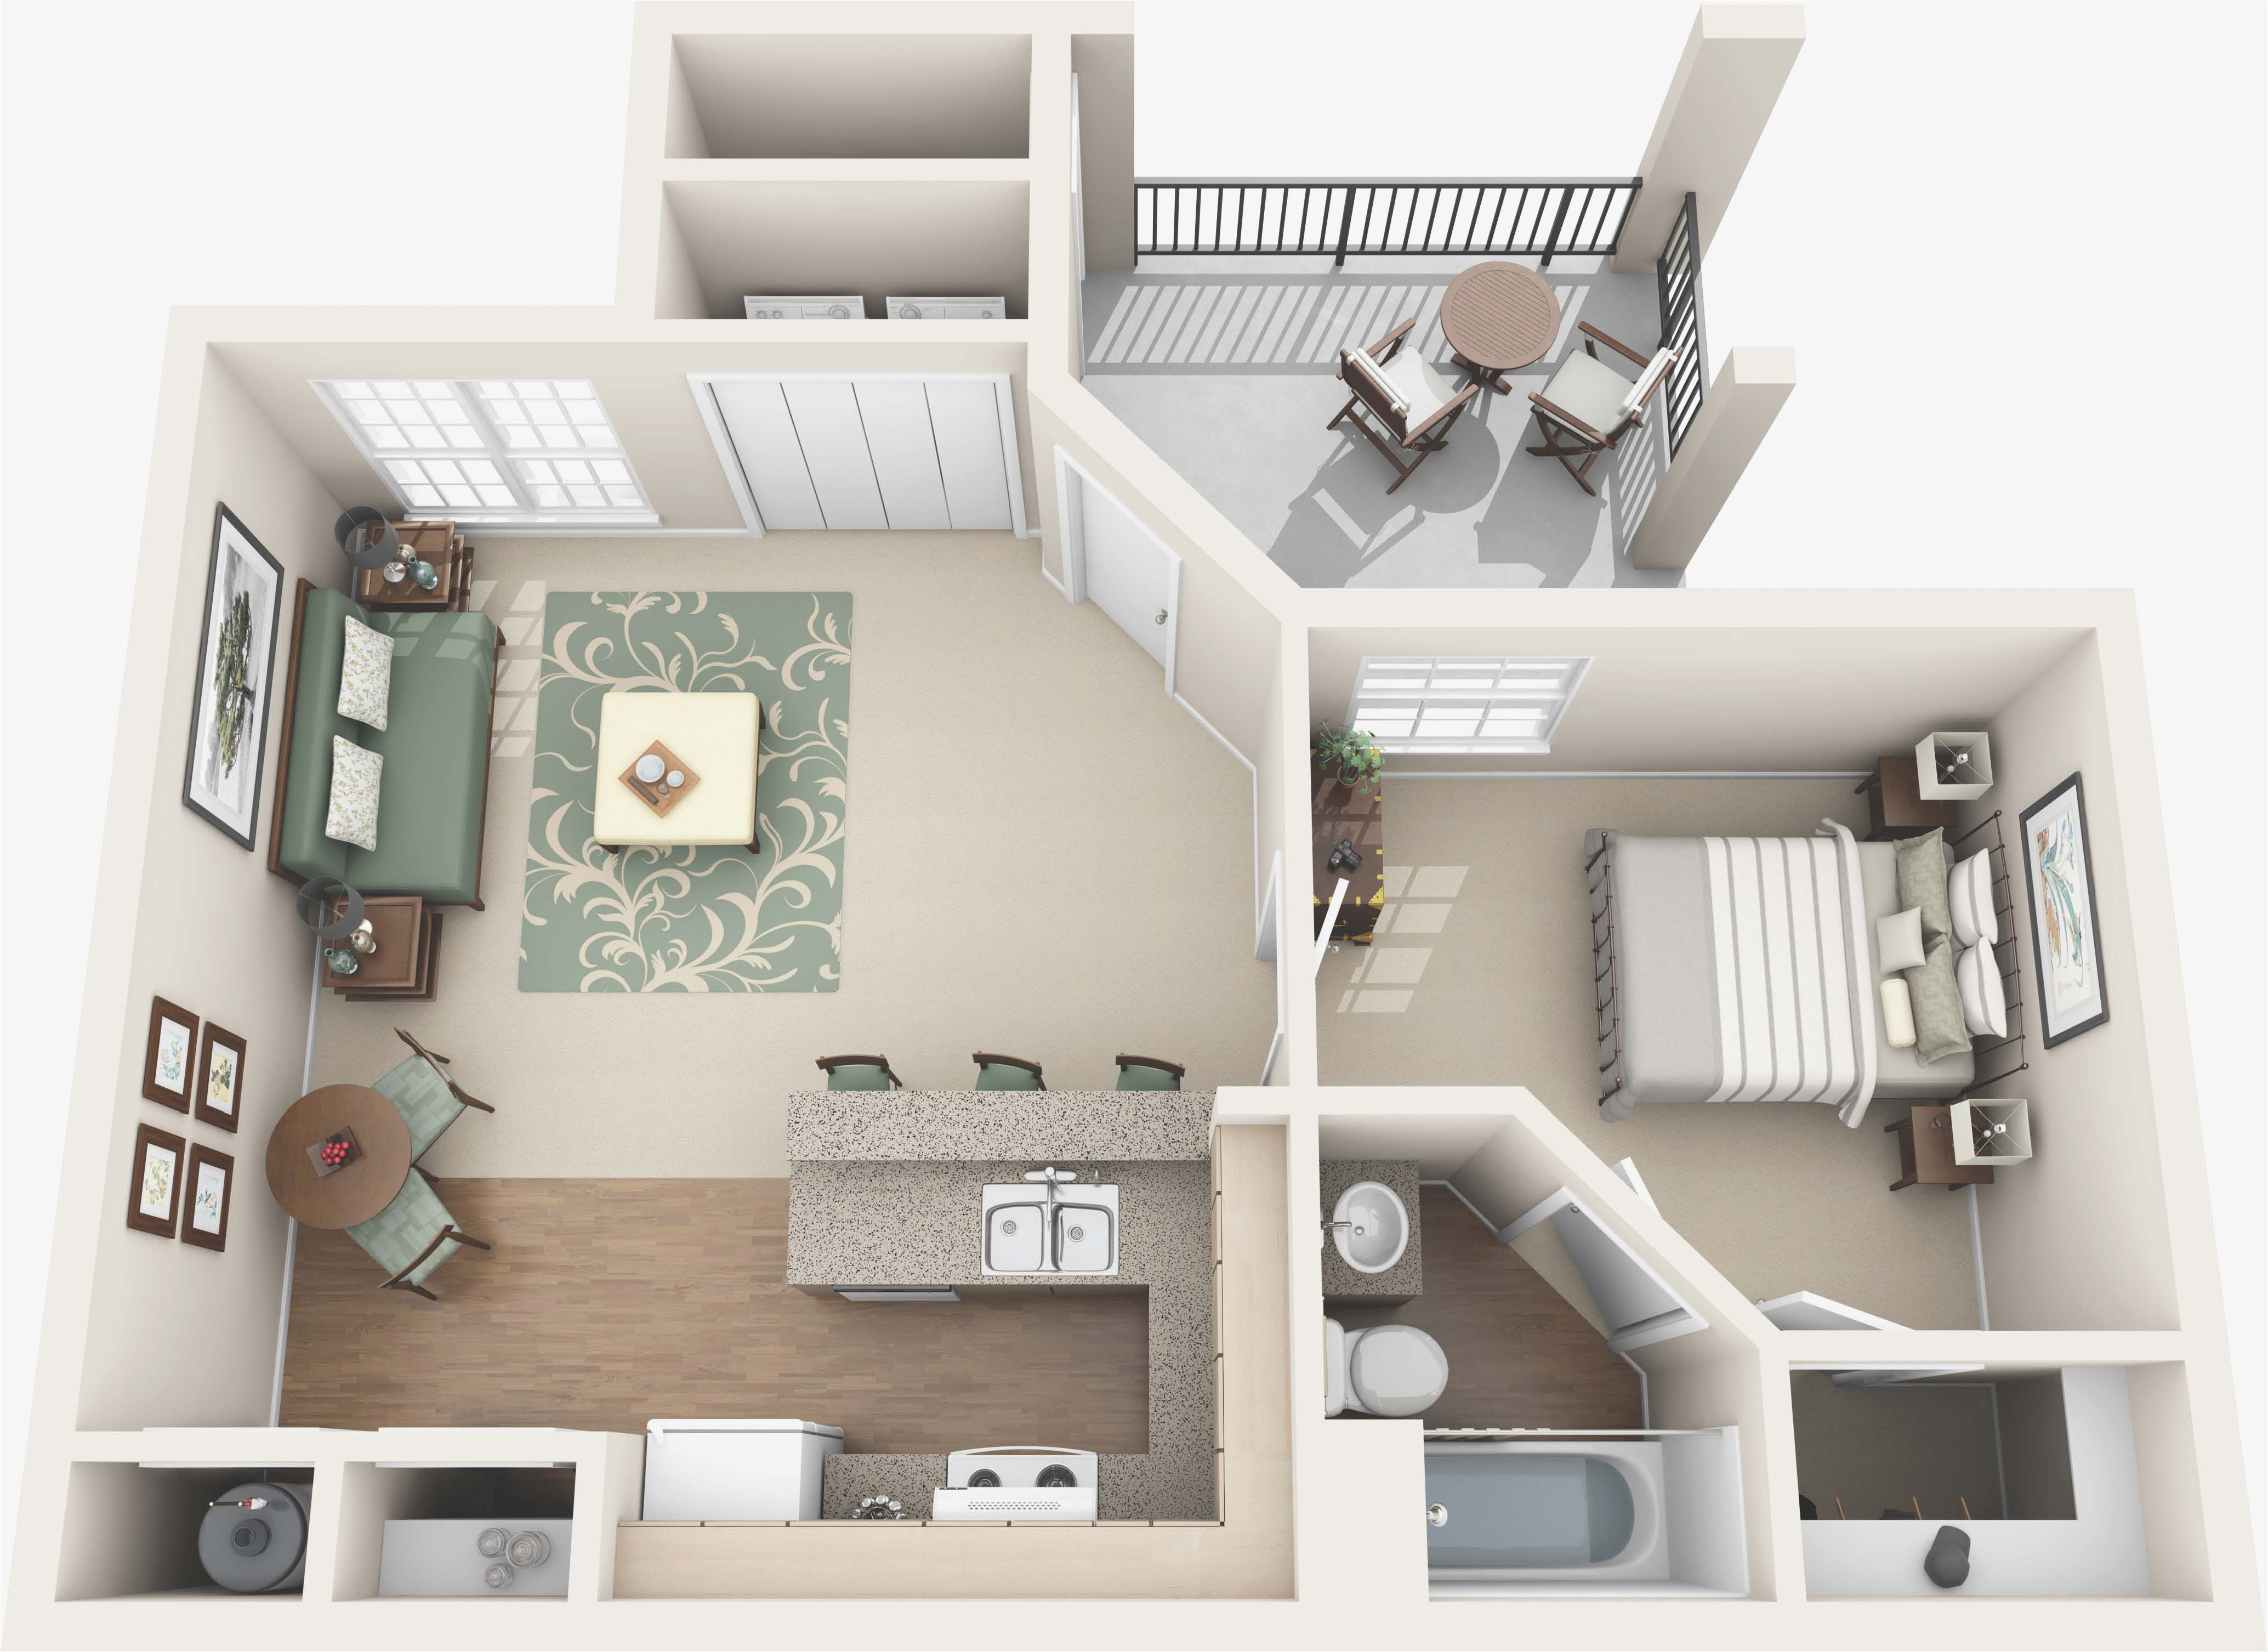 one bedroom apartments starkville ms photo gallery a a previous image